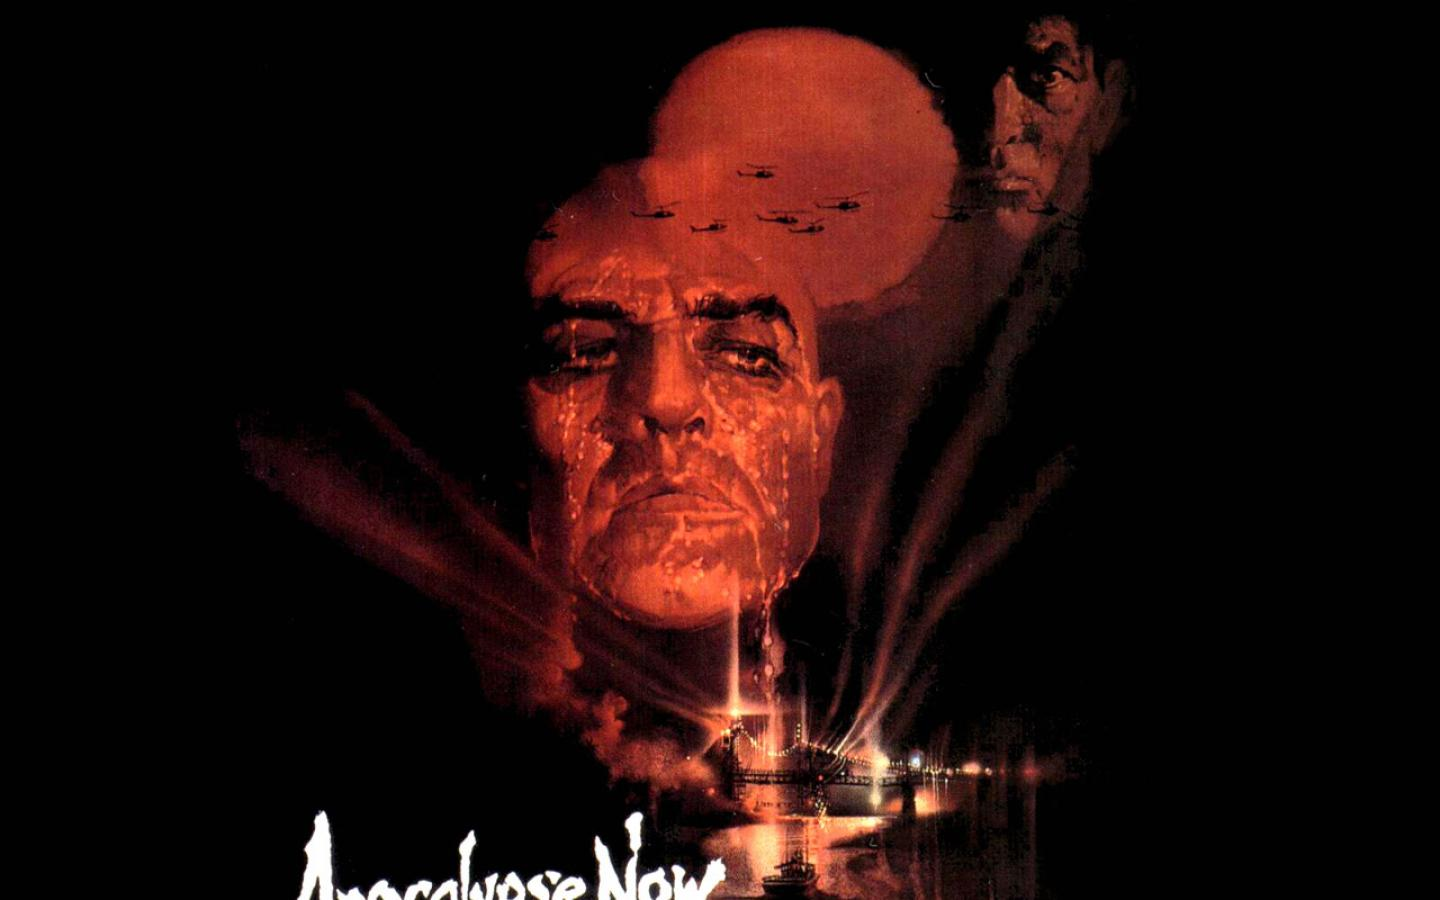 Best movie   Apocalypse Now 1440x900 Wallpaper 1 1440x900